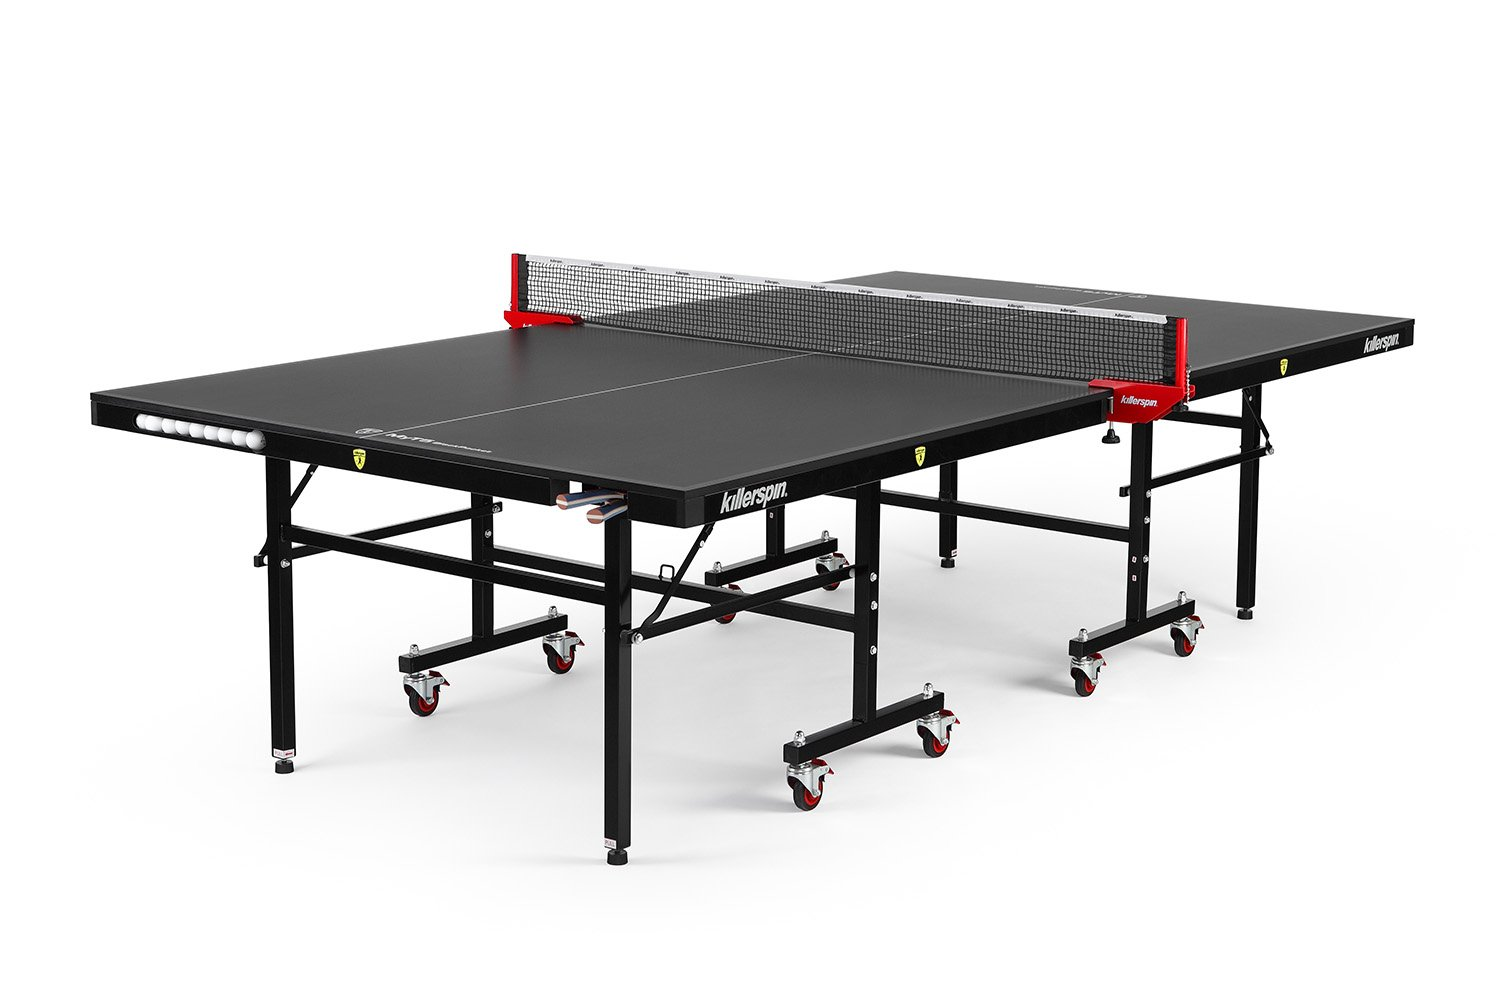 Killerpin MyT5BlackPocket Table Tennis Table - Premium Pocket Designed Ping Pong Table with Thick Durable Frame and Table Top That Stands Up To Hard Use by Killerspin